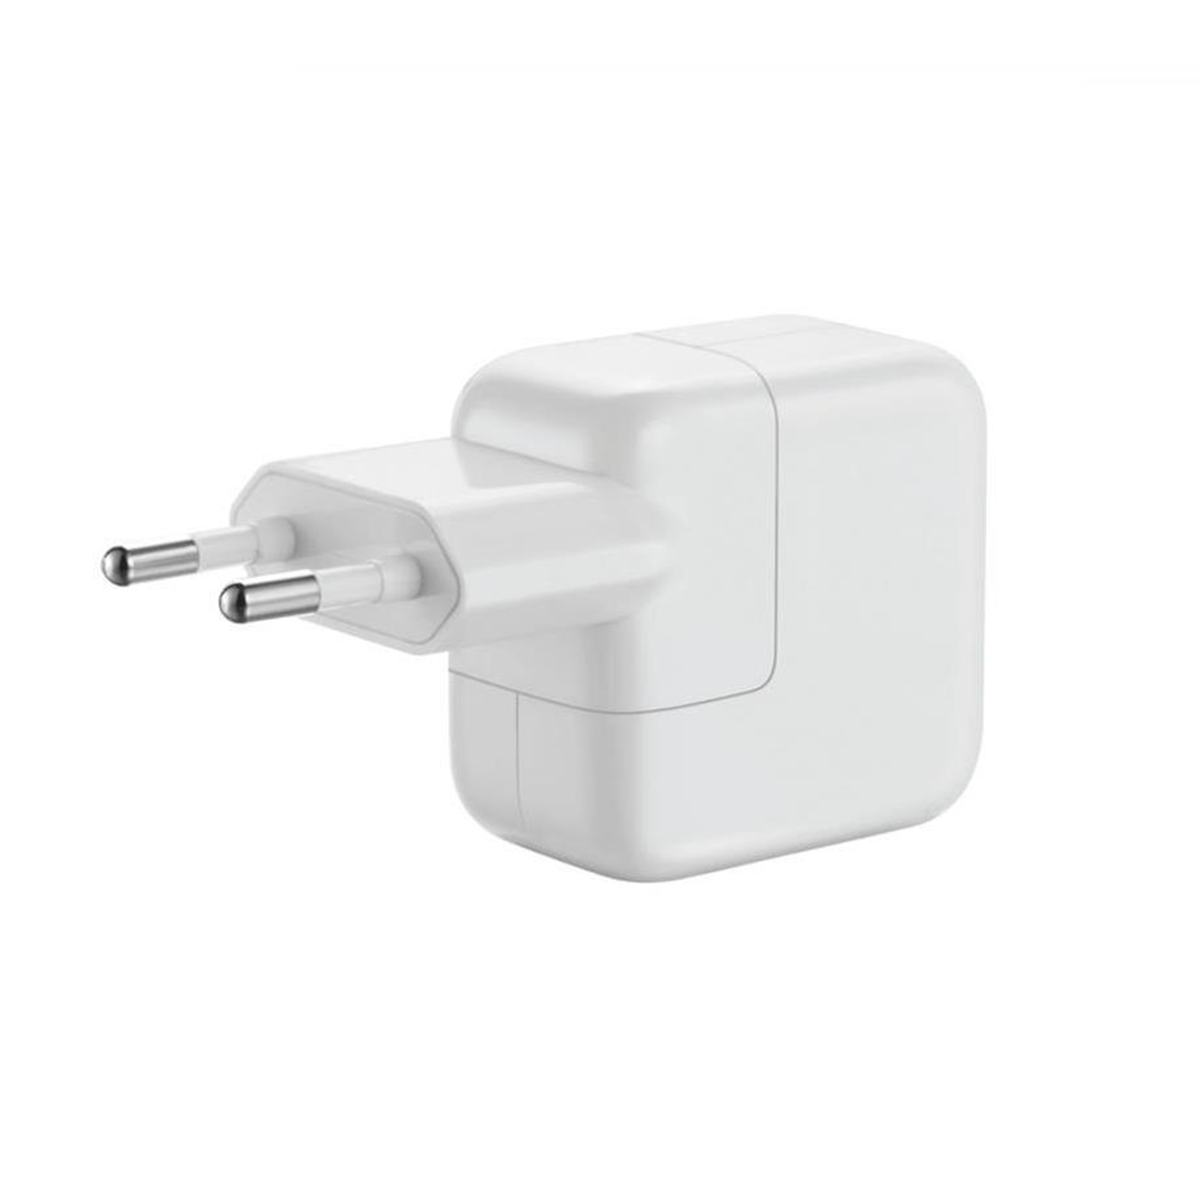 APPLE 12W FAST CHARGING ADAPTER